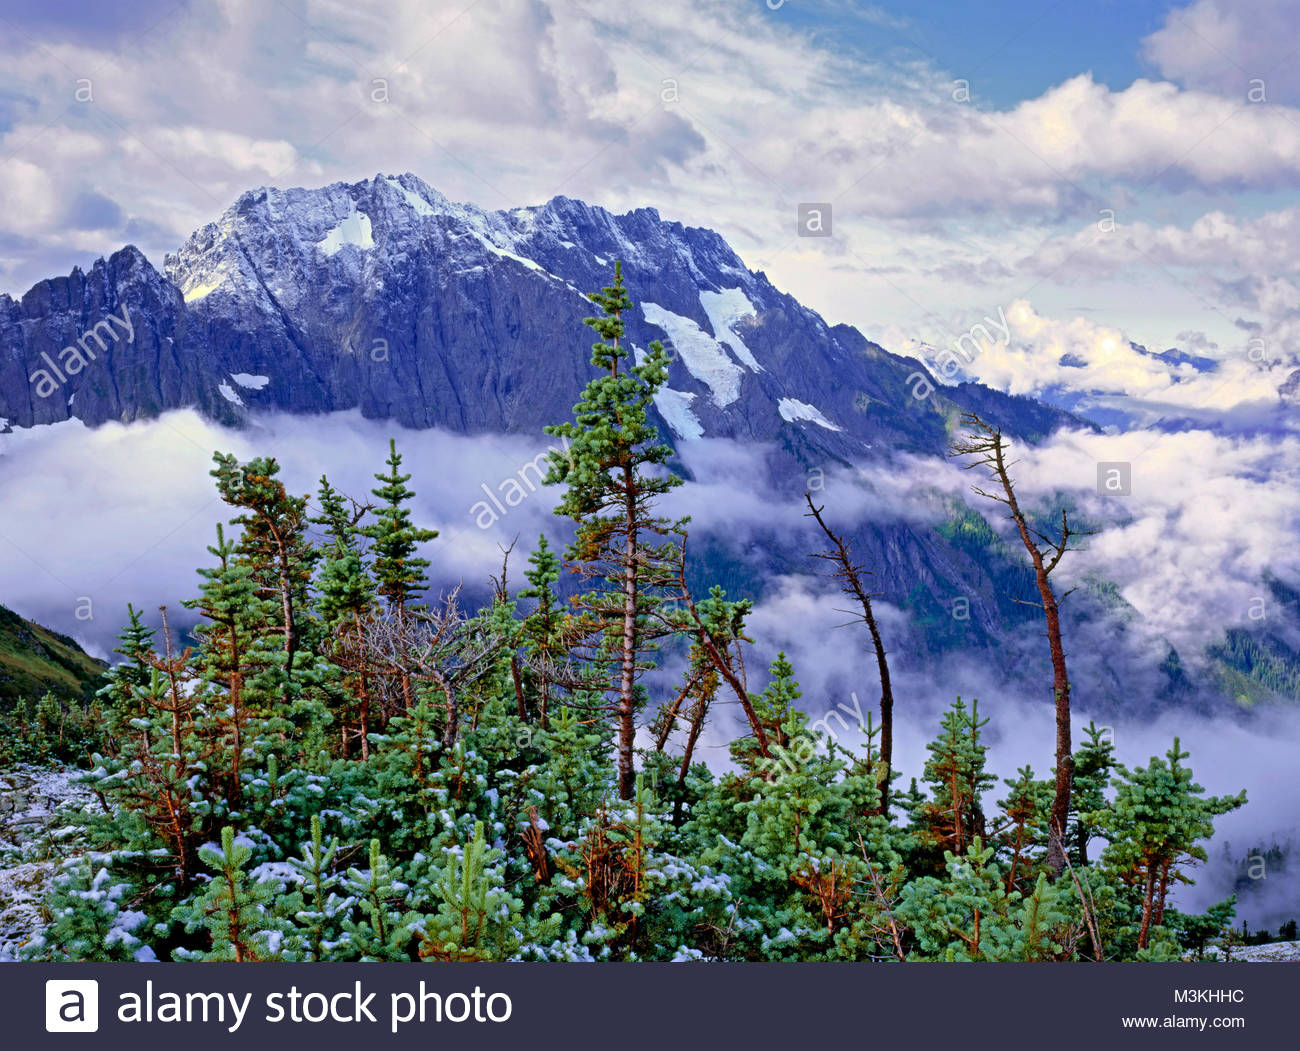 Subalpine Fir und Cascade Peak von Sahale Arm, North Cascades National Park, Washington Stockbild